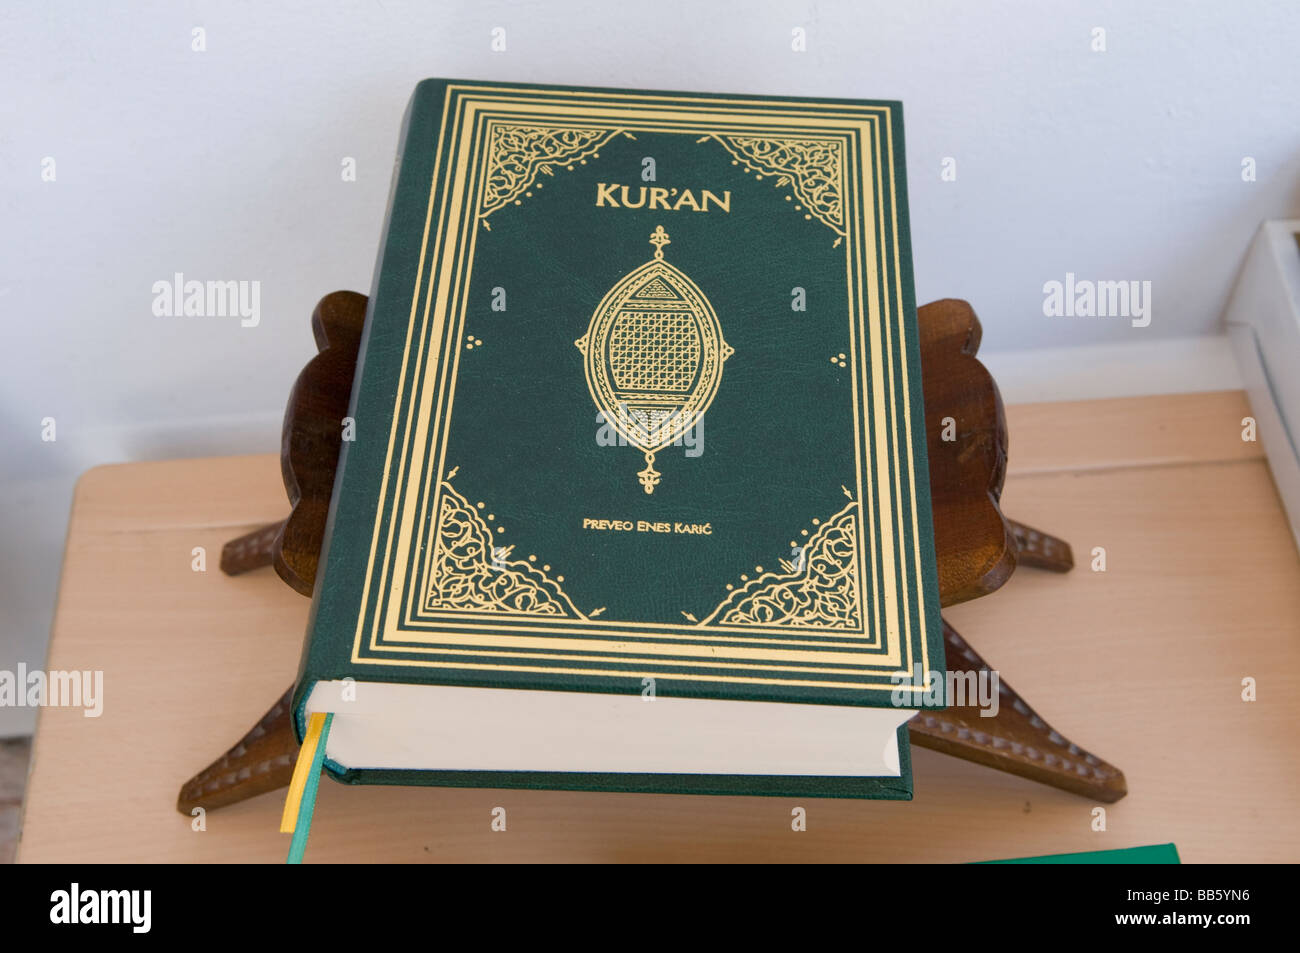 Copy of the sacred text of Islam Qur'an in a bookstore in the city of Sarajevo, Bosnia Herzegovina - Stock Image